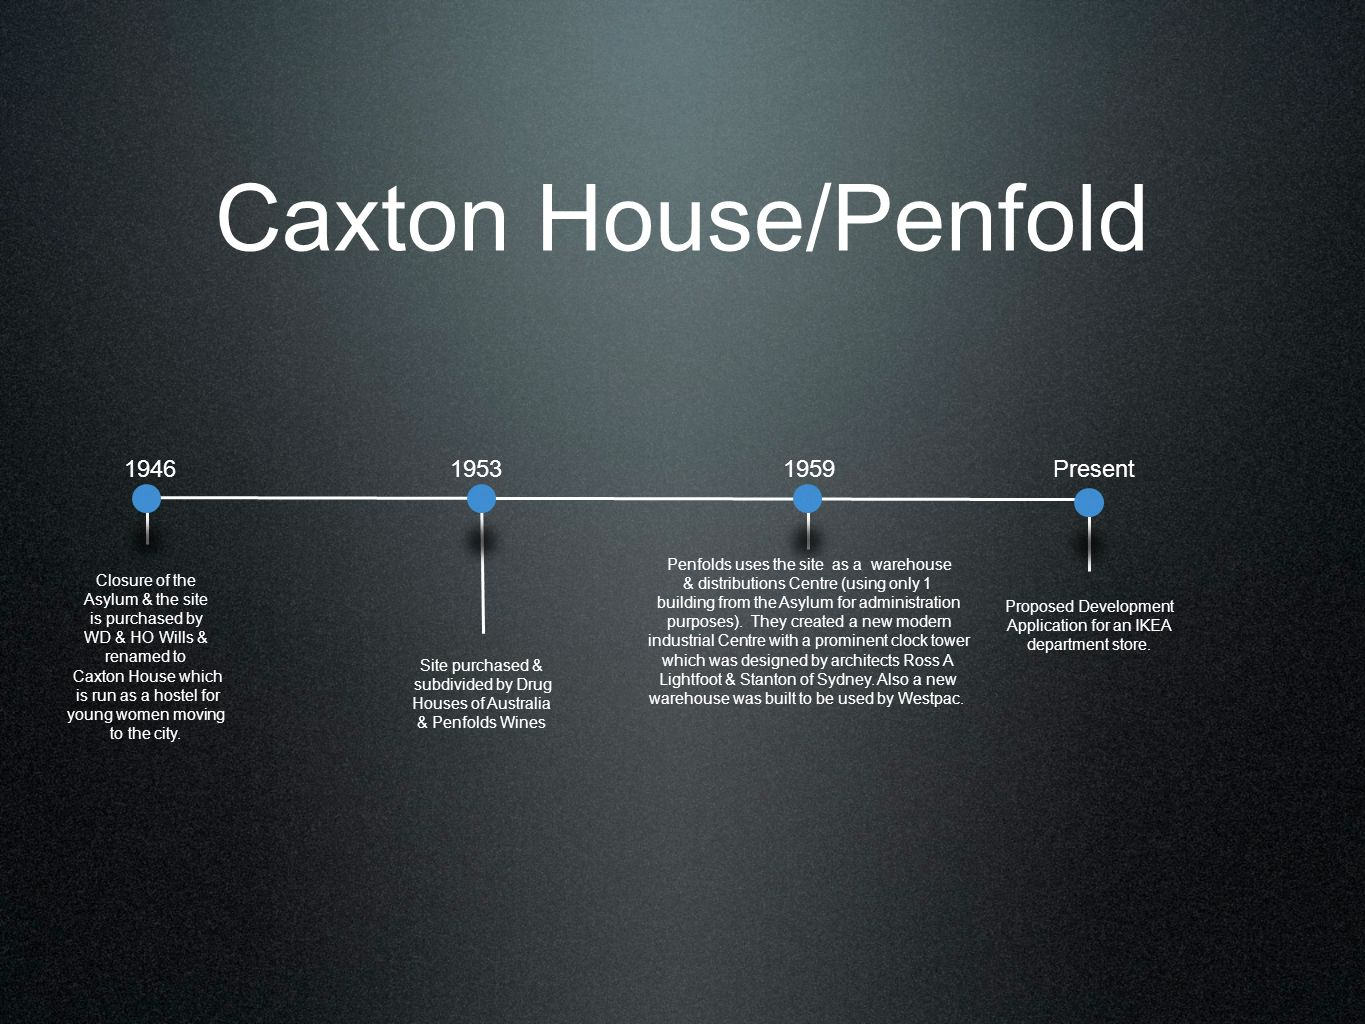 Caxton House/Penfold 194619531959Present Proposed Development Application for an IKEA department store.